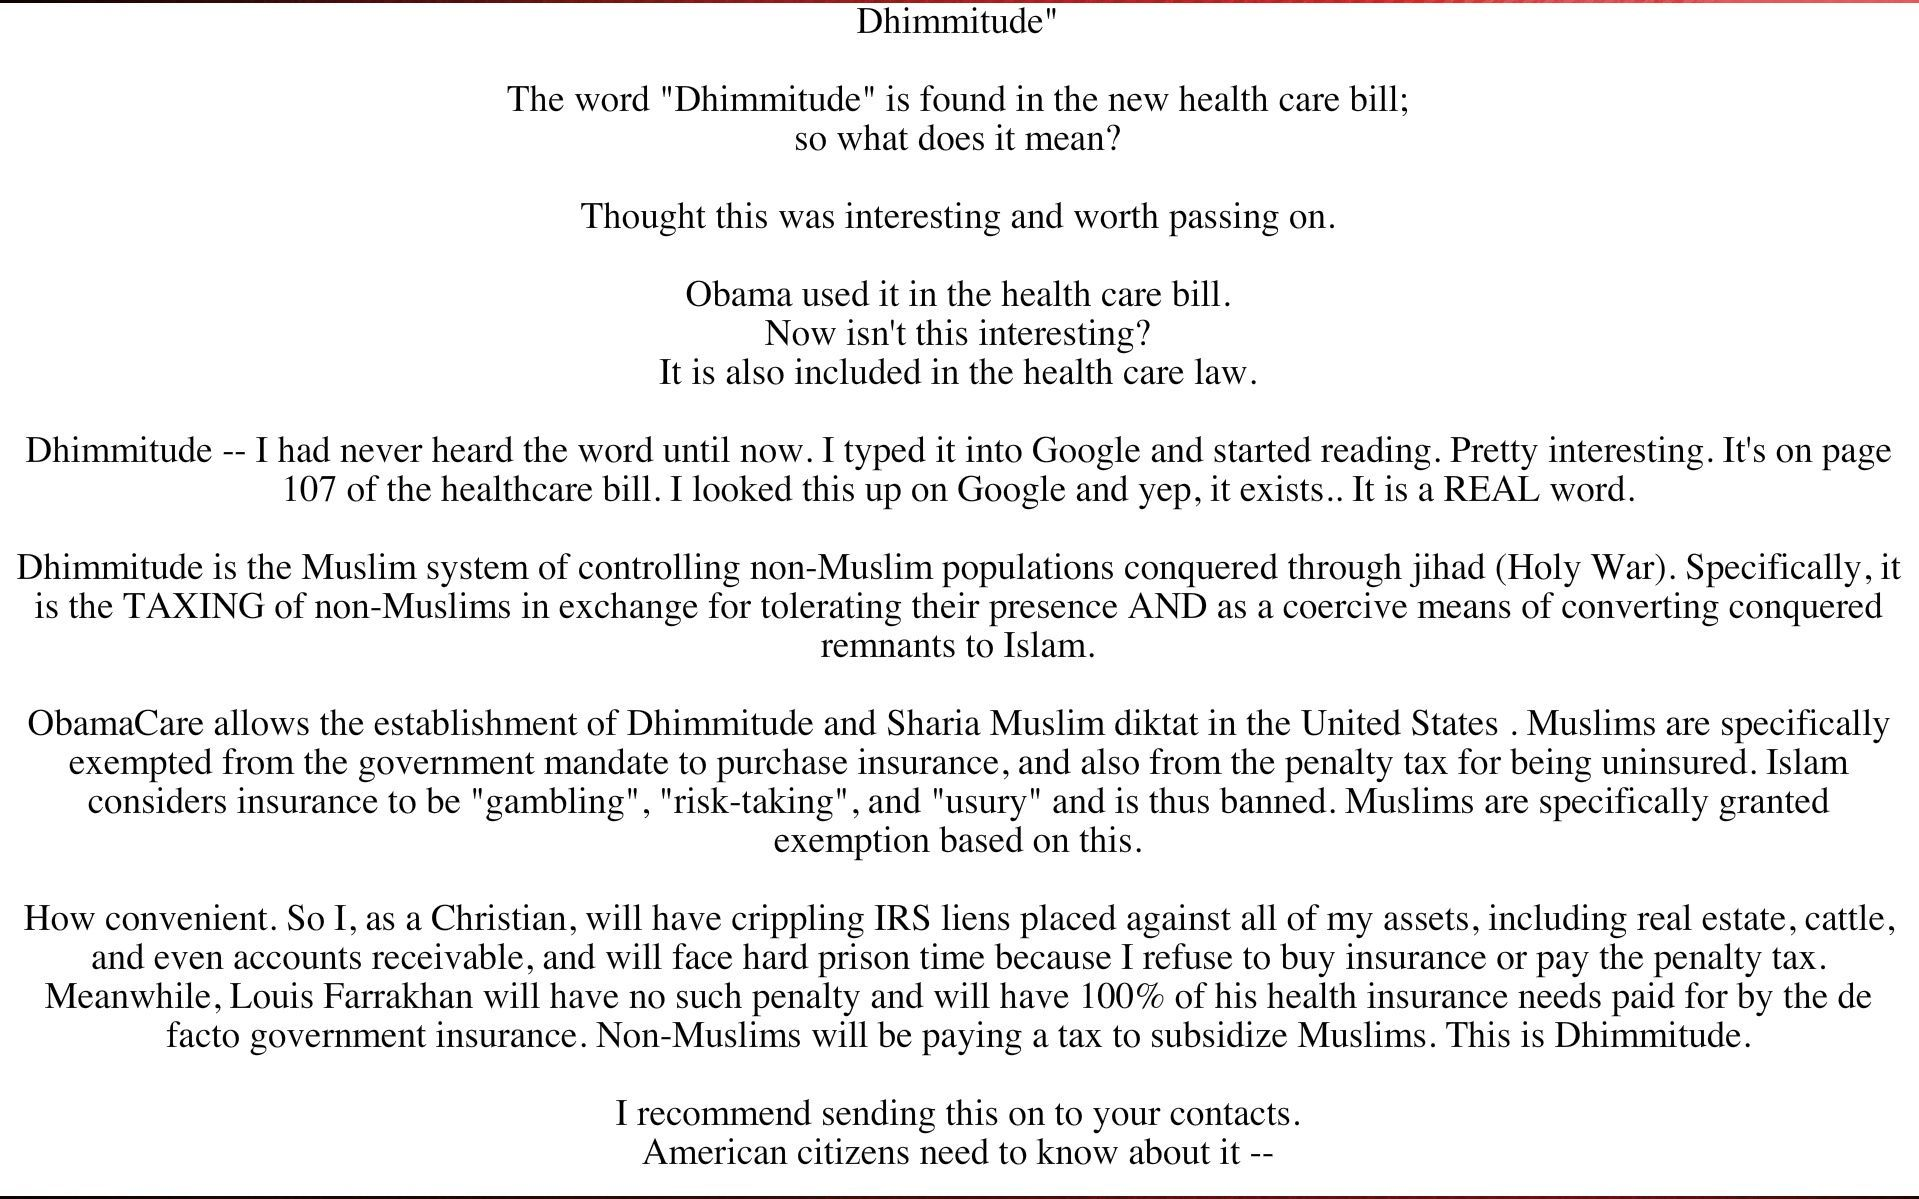 """The word """"Dhimmitude"""" is found in the new health care bill ..."""